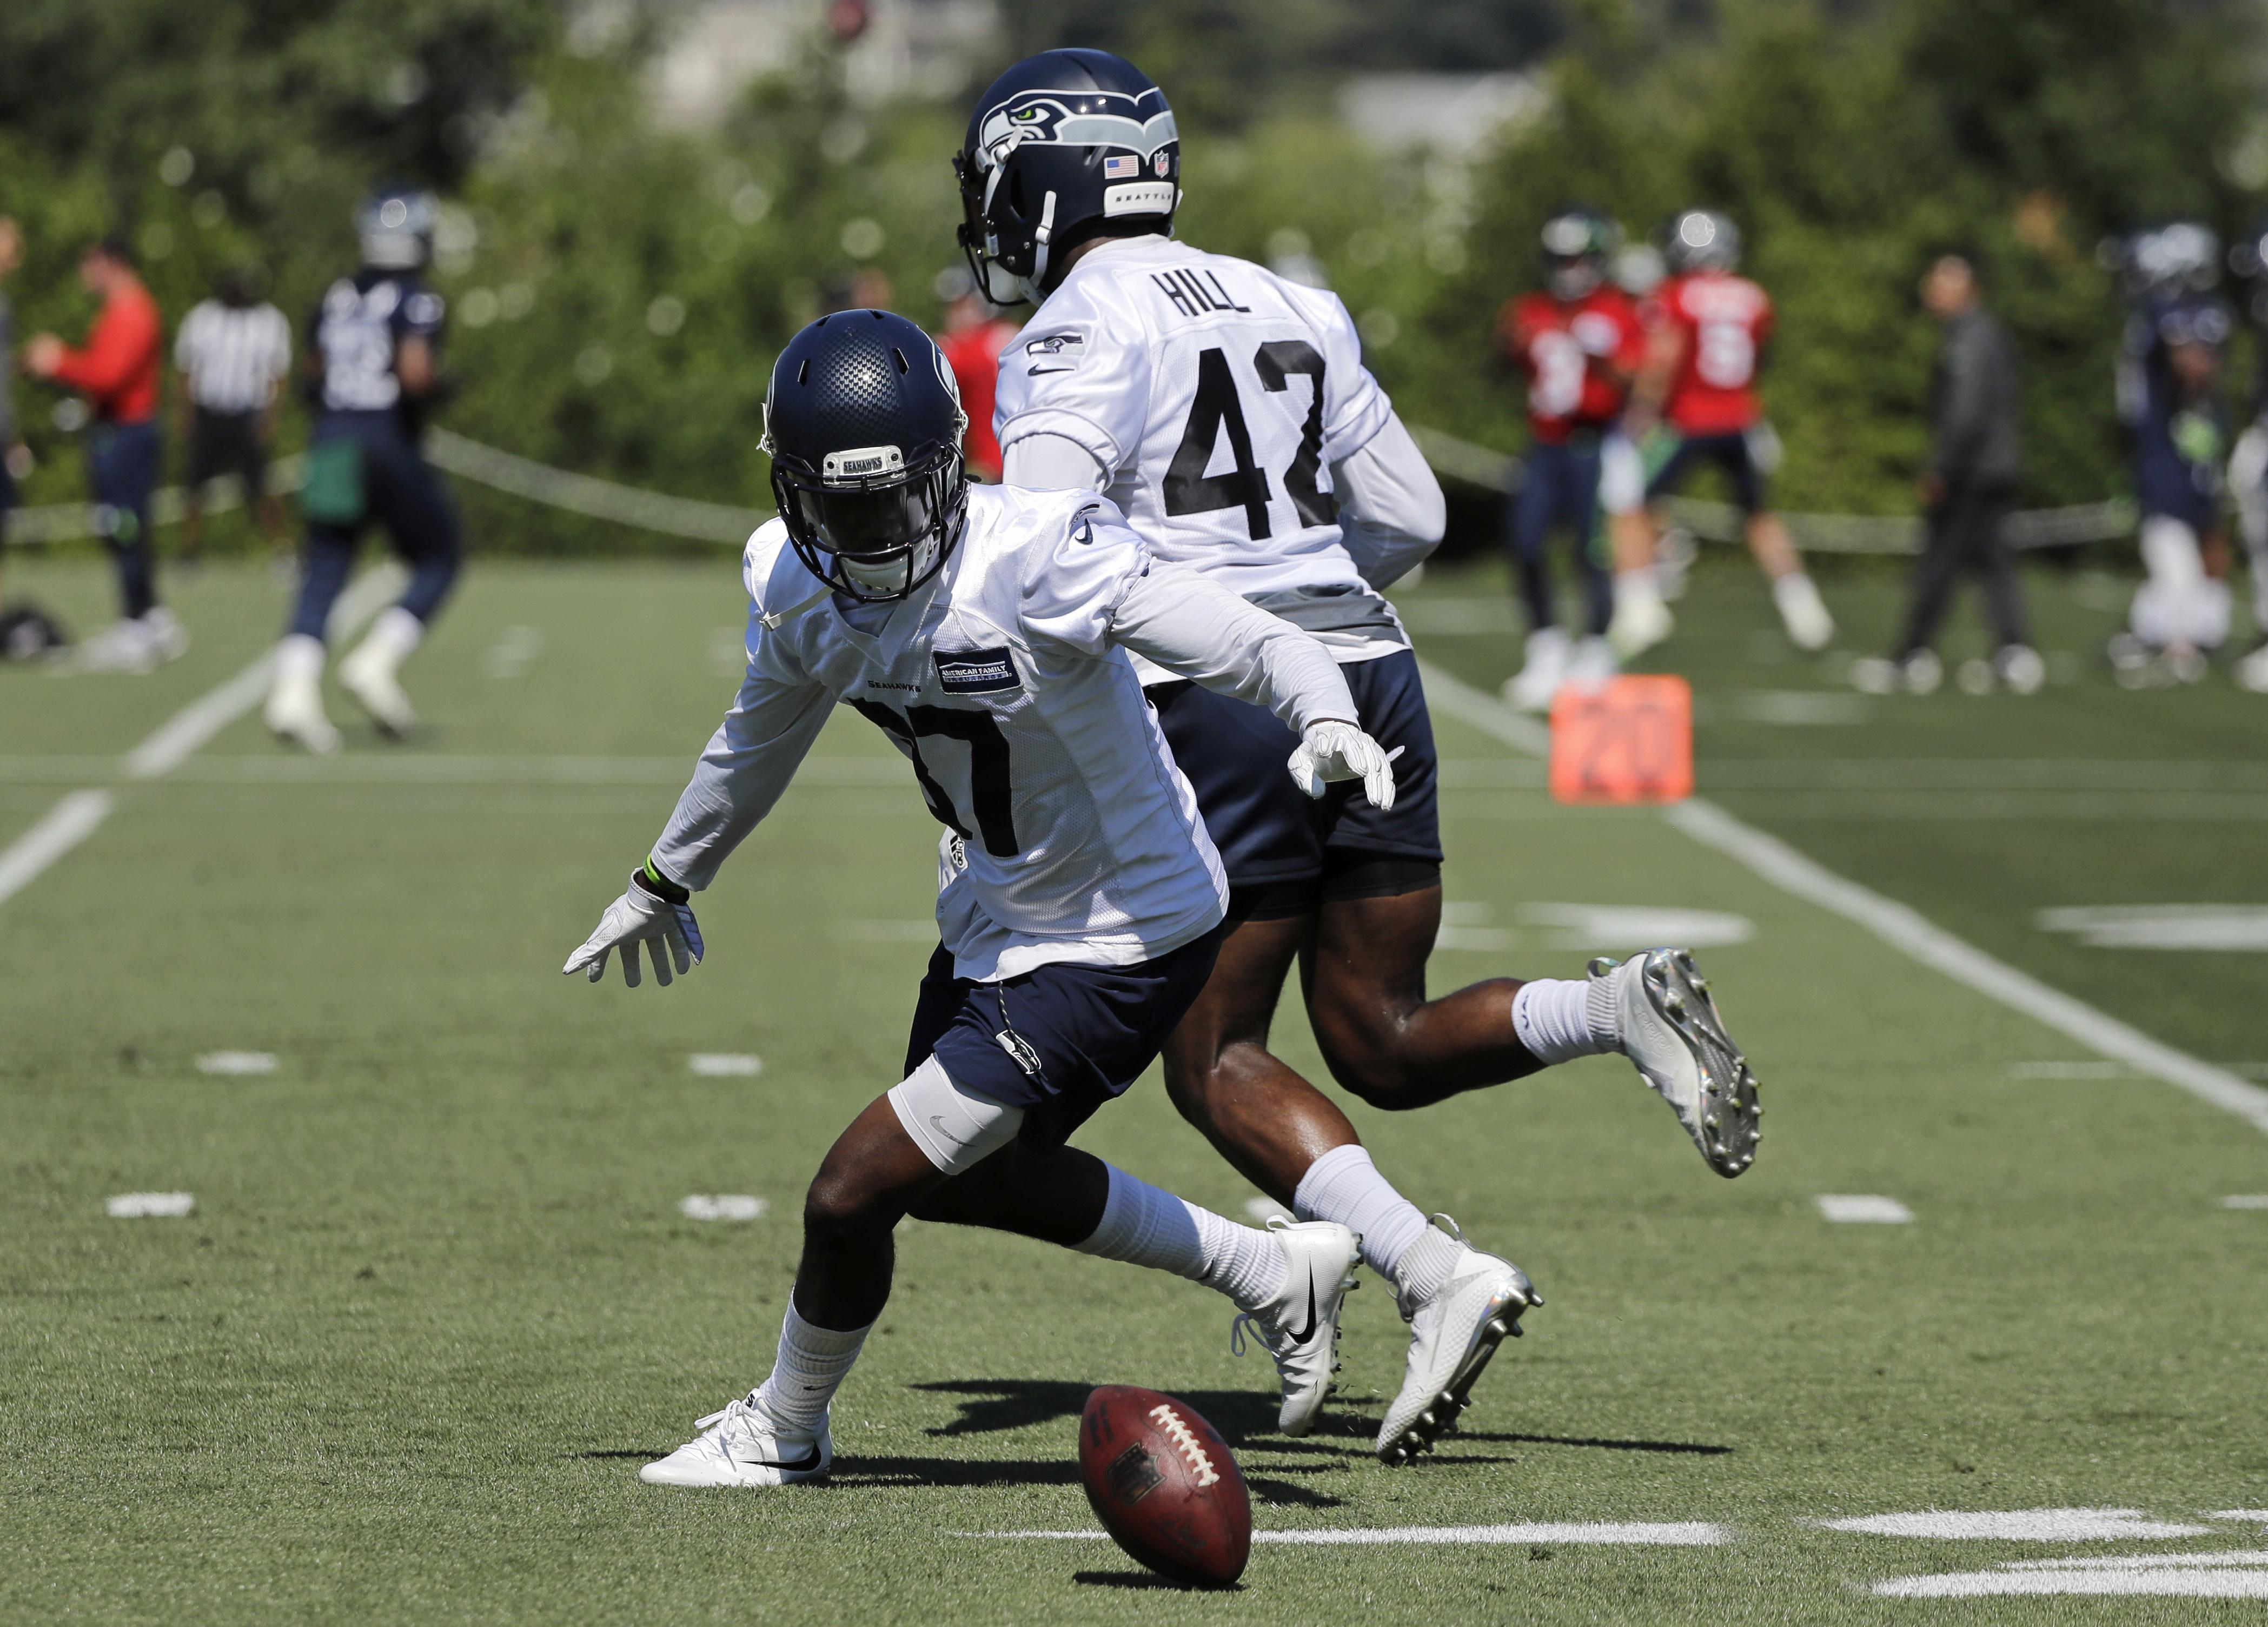 db15e94939a Seahawks expected to start 15 new players in preseason opener ...